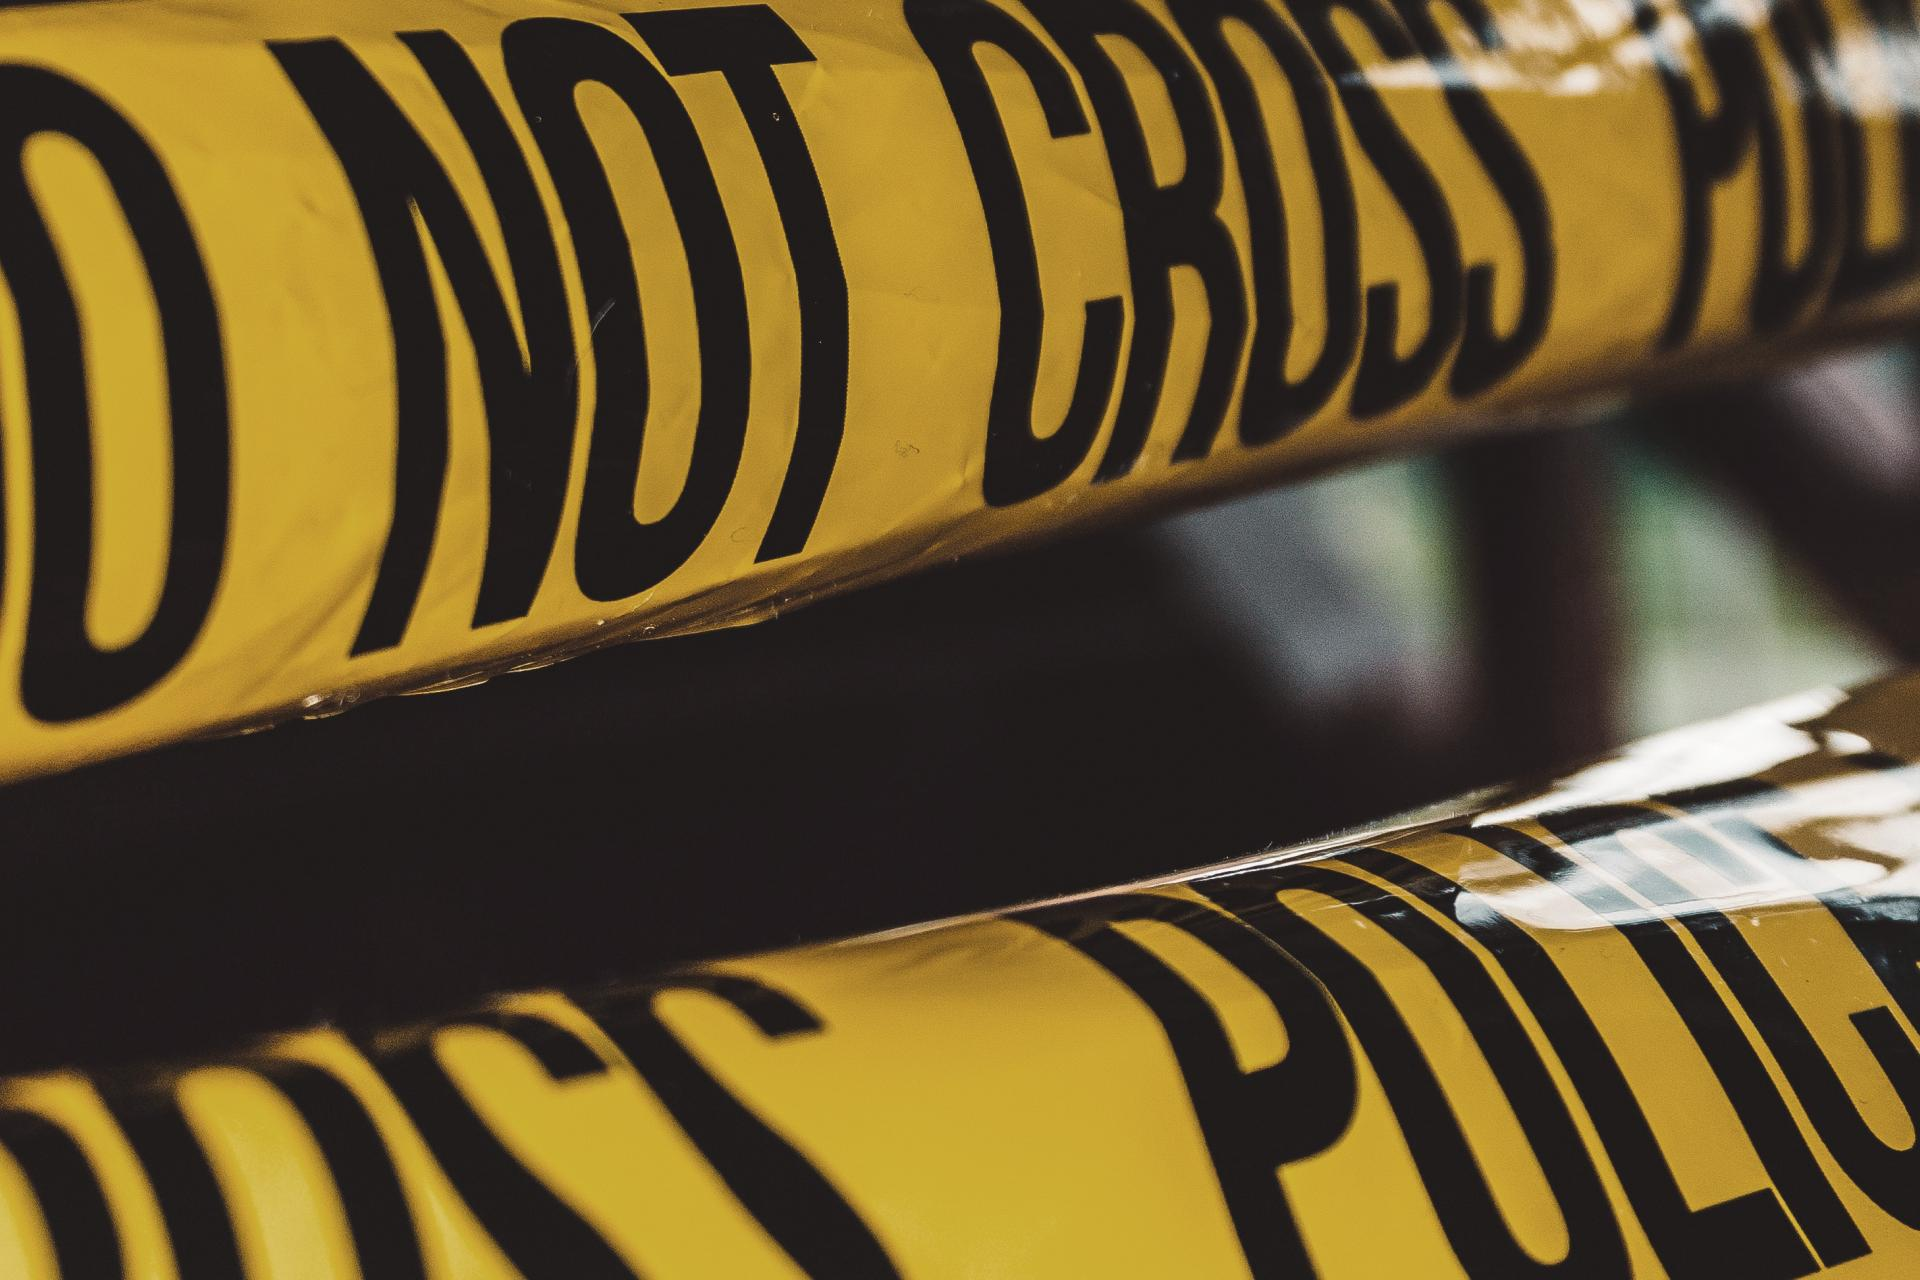 Criminal Law image - Police tape